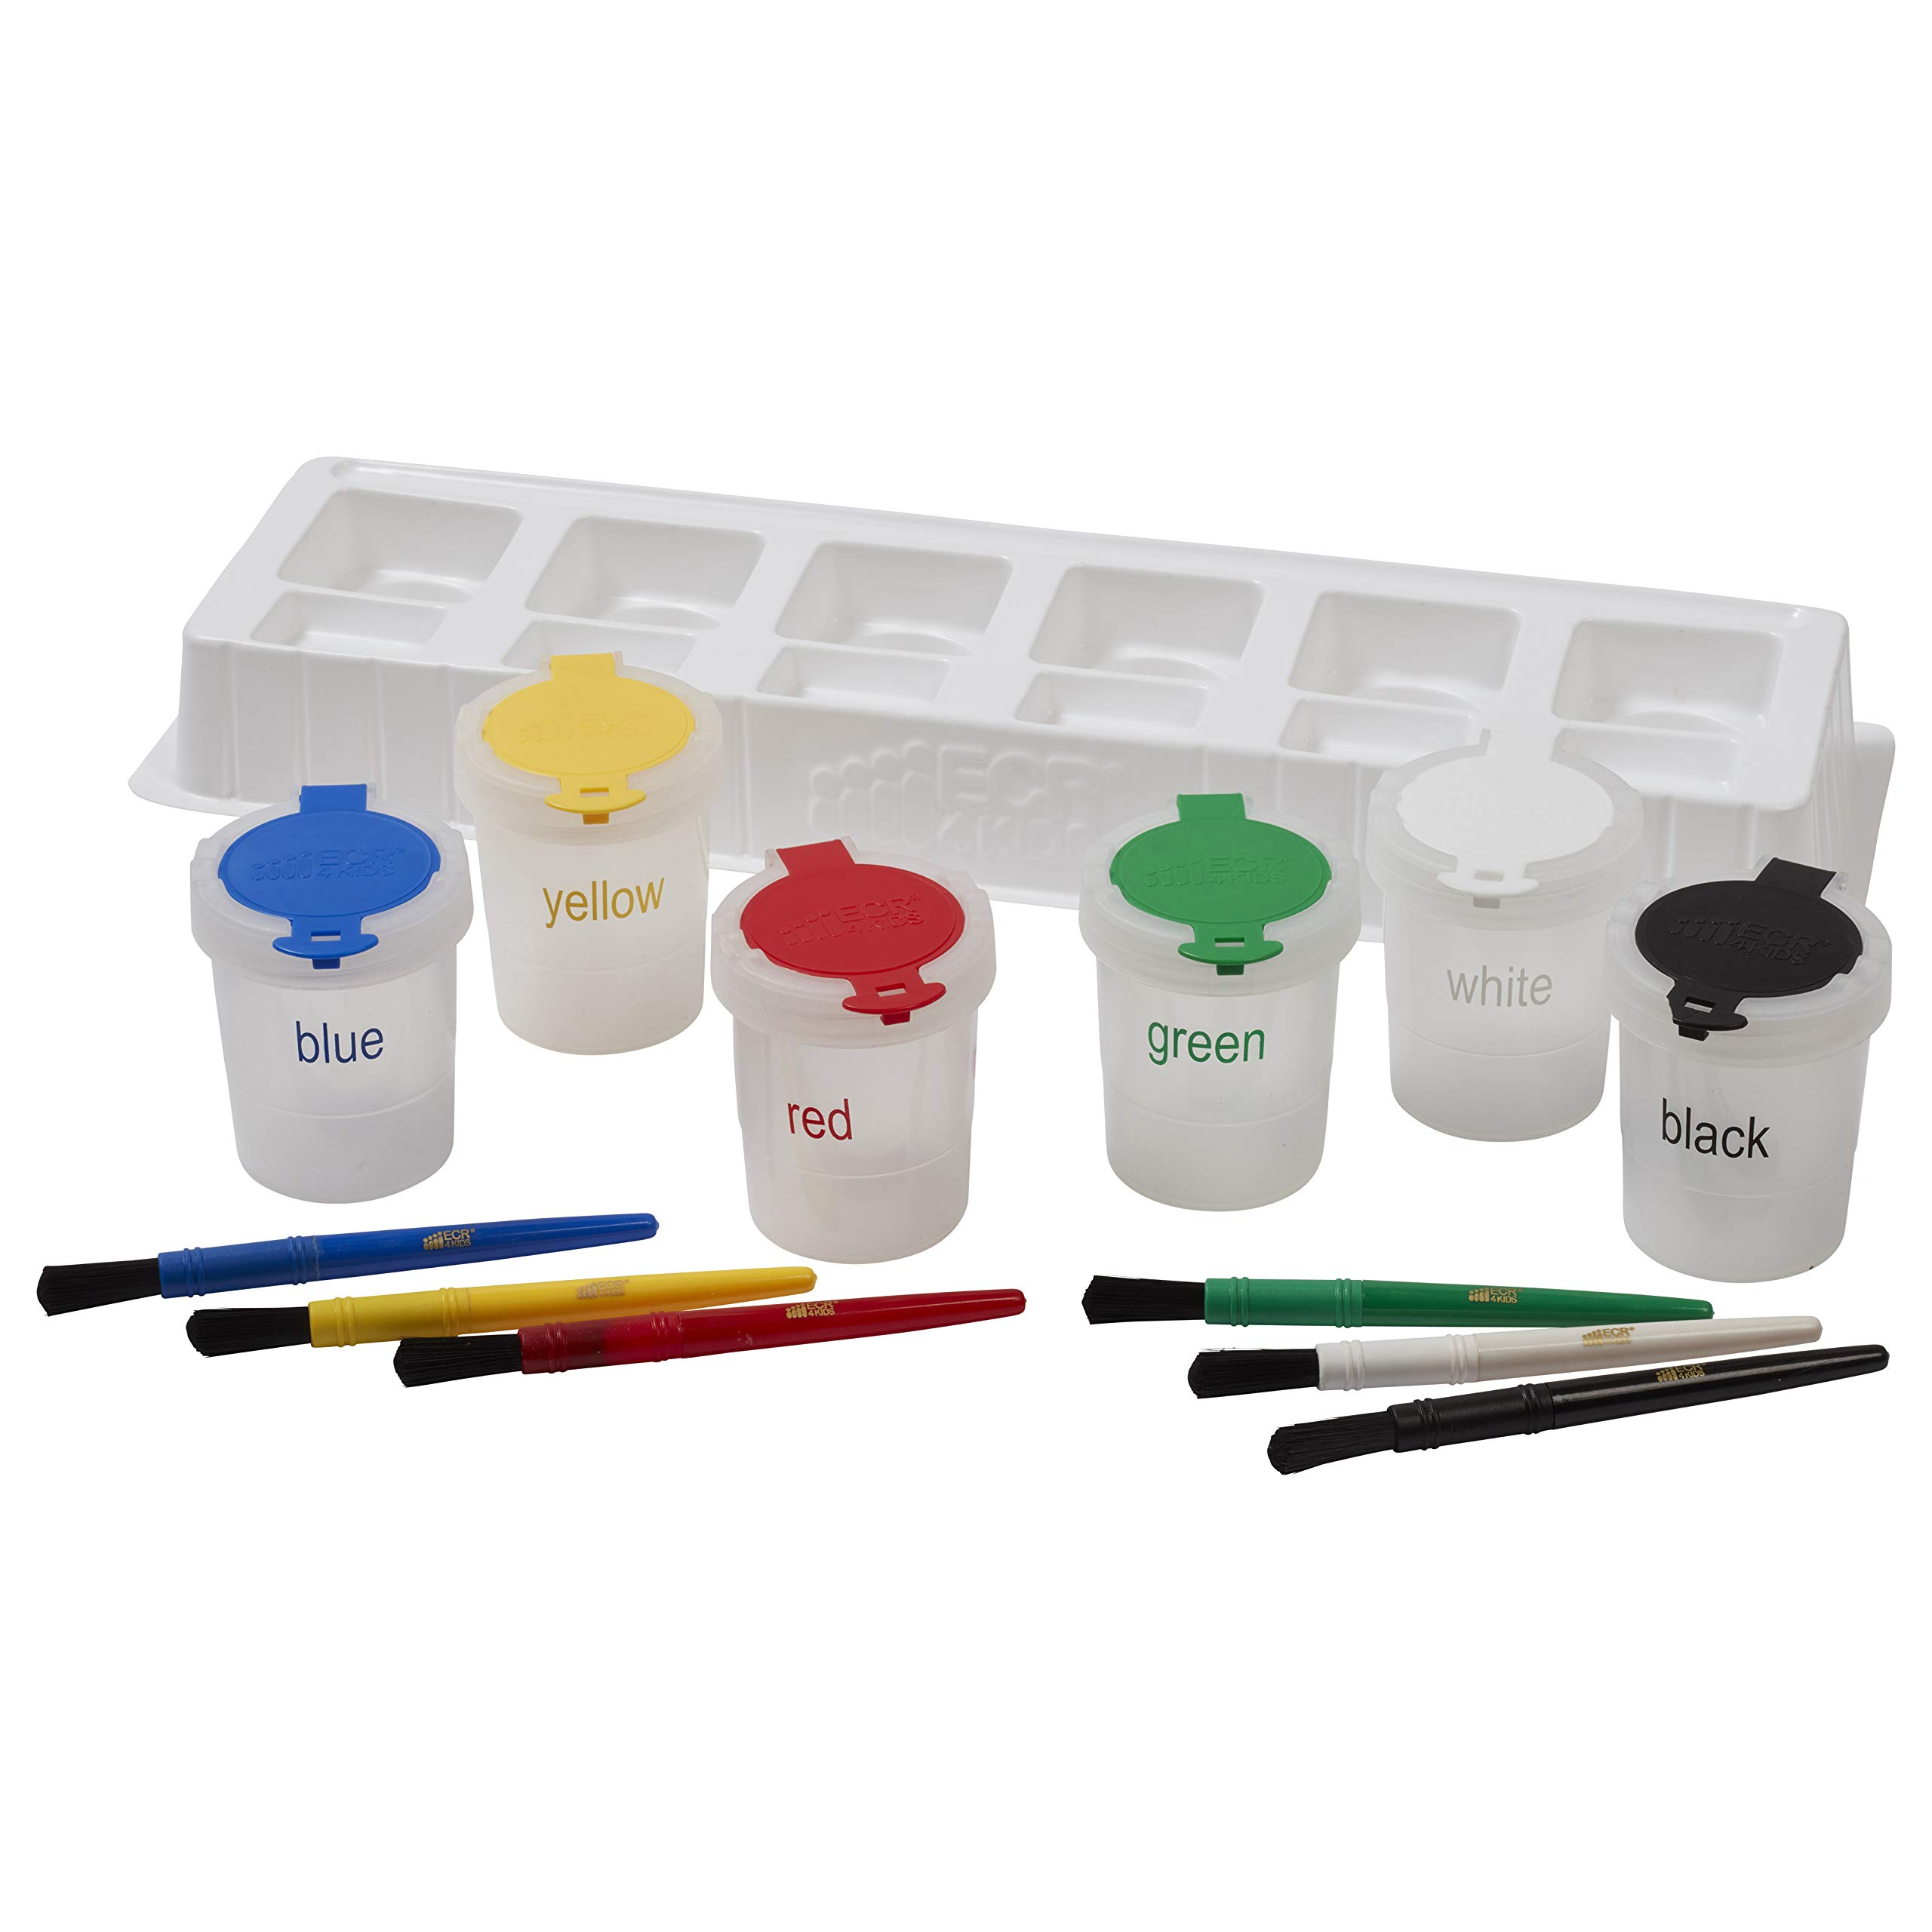 ECR4Kids Art Brush, Tray and Large Trilingual Paint Cups Set - Art Supplies for Kids and Toddlers (13-Piece Kit)